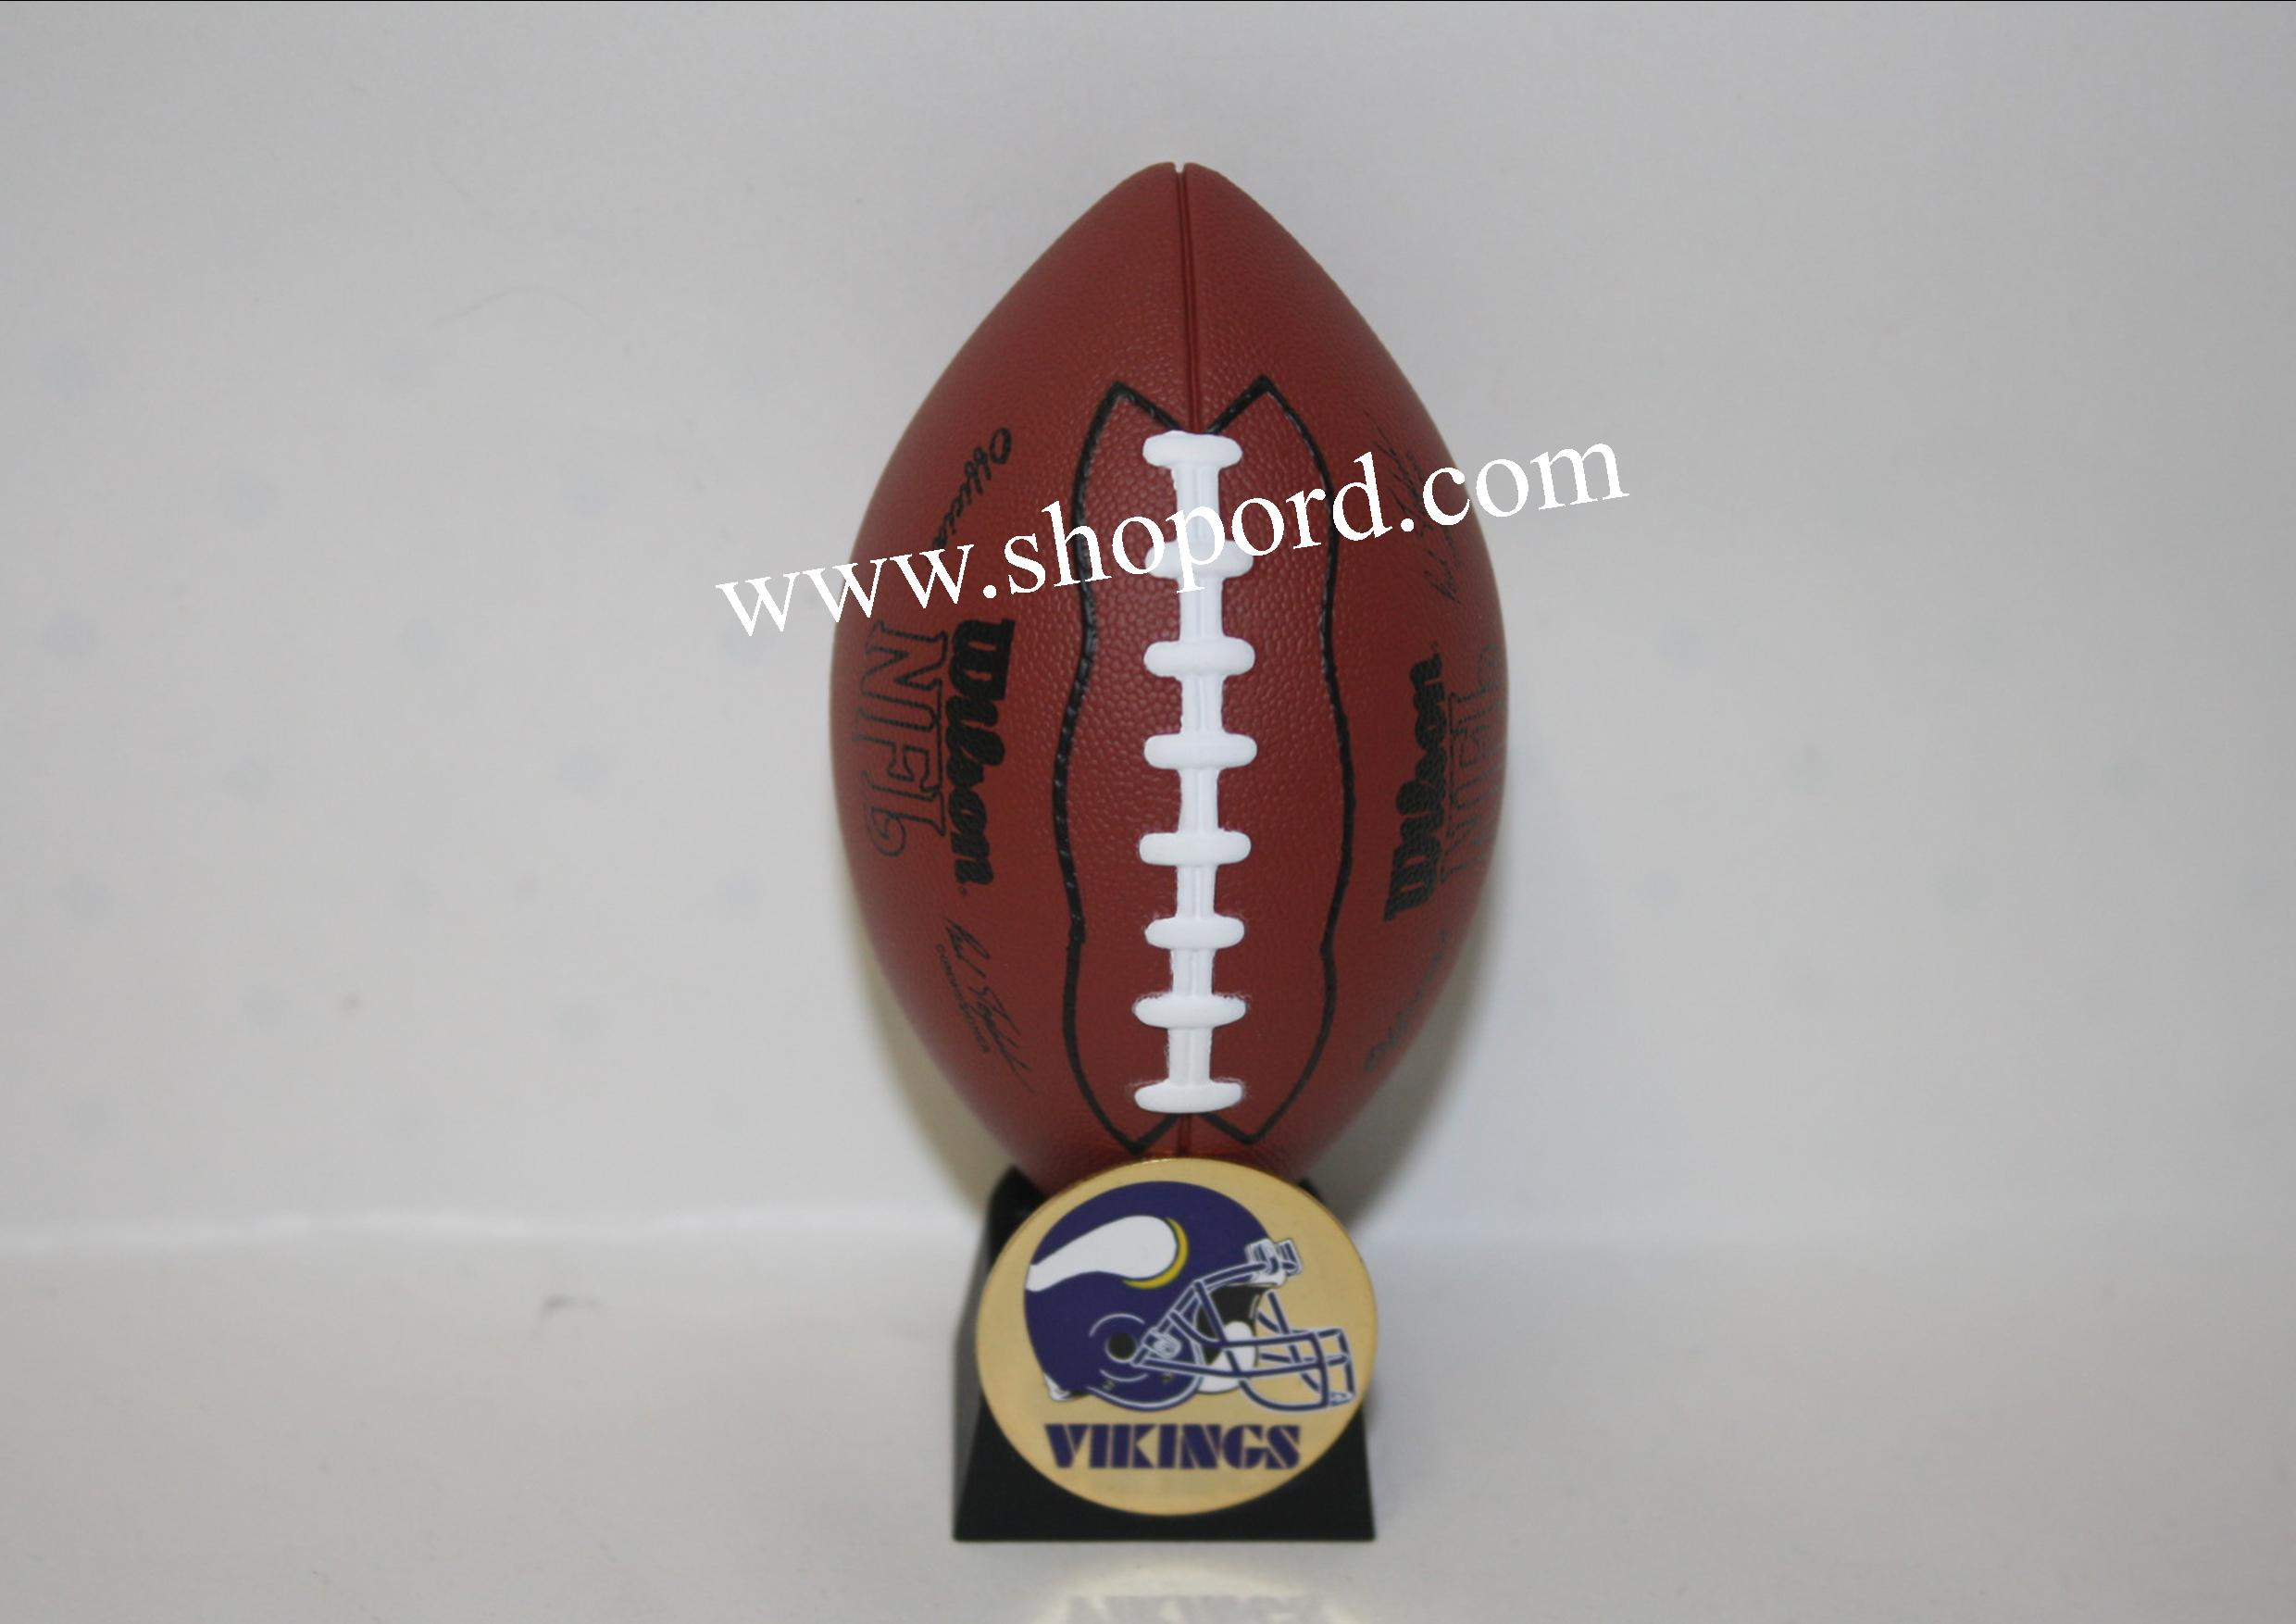 Hallmark 2000 NFL Collection Minnesota Vikings Ornament QSR5164